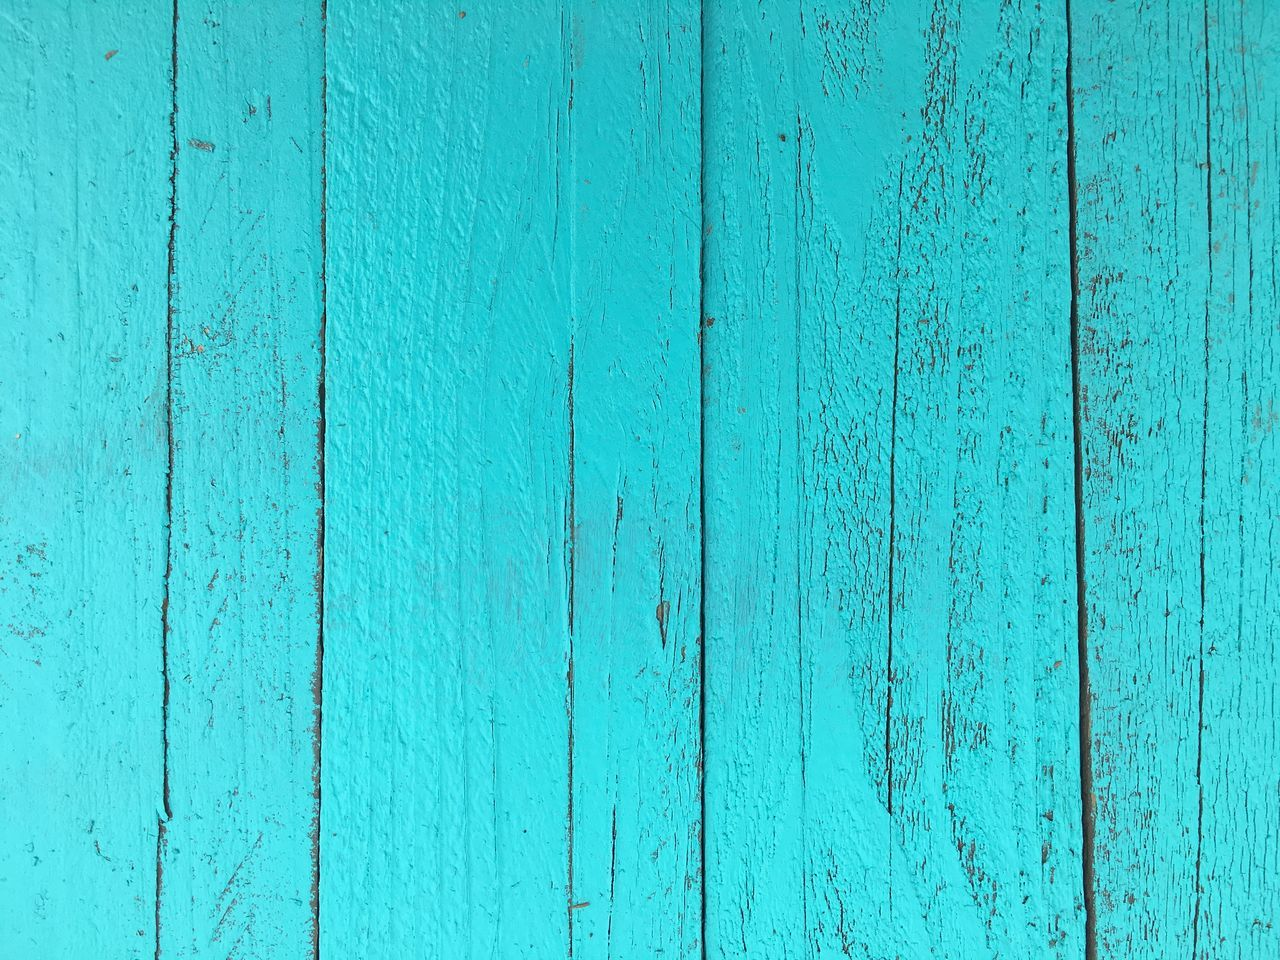 Abstract Antique Backdrop Backgrounds Blue Close-up Copy Space Cracked Hardwood Old Old-fashioned Paint Pattern Plank Retro Styled Rough Run-down Sparse Striped Textured  Timber Weathered Wood - Material Wood Grain Wood Paneling